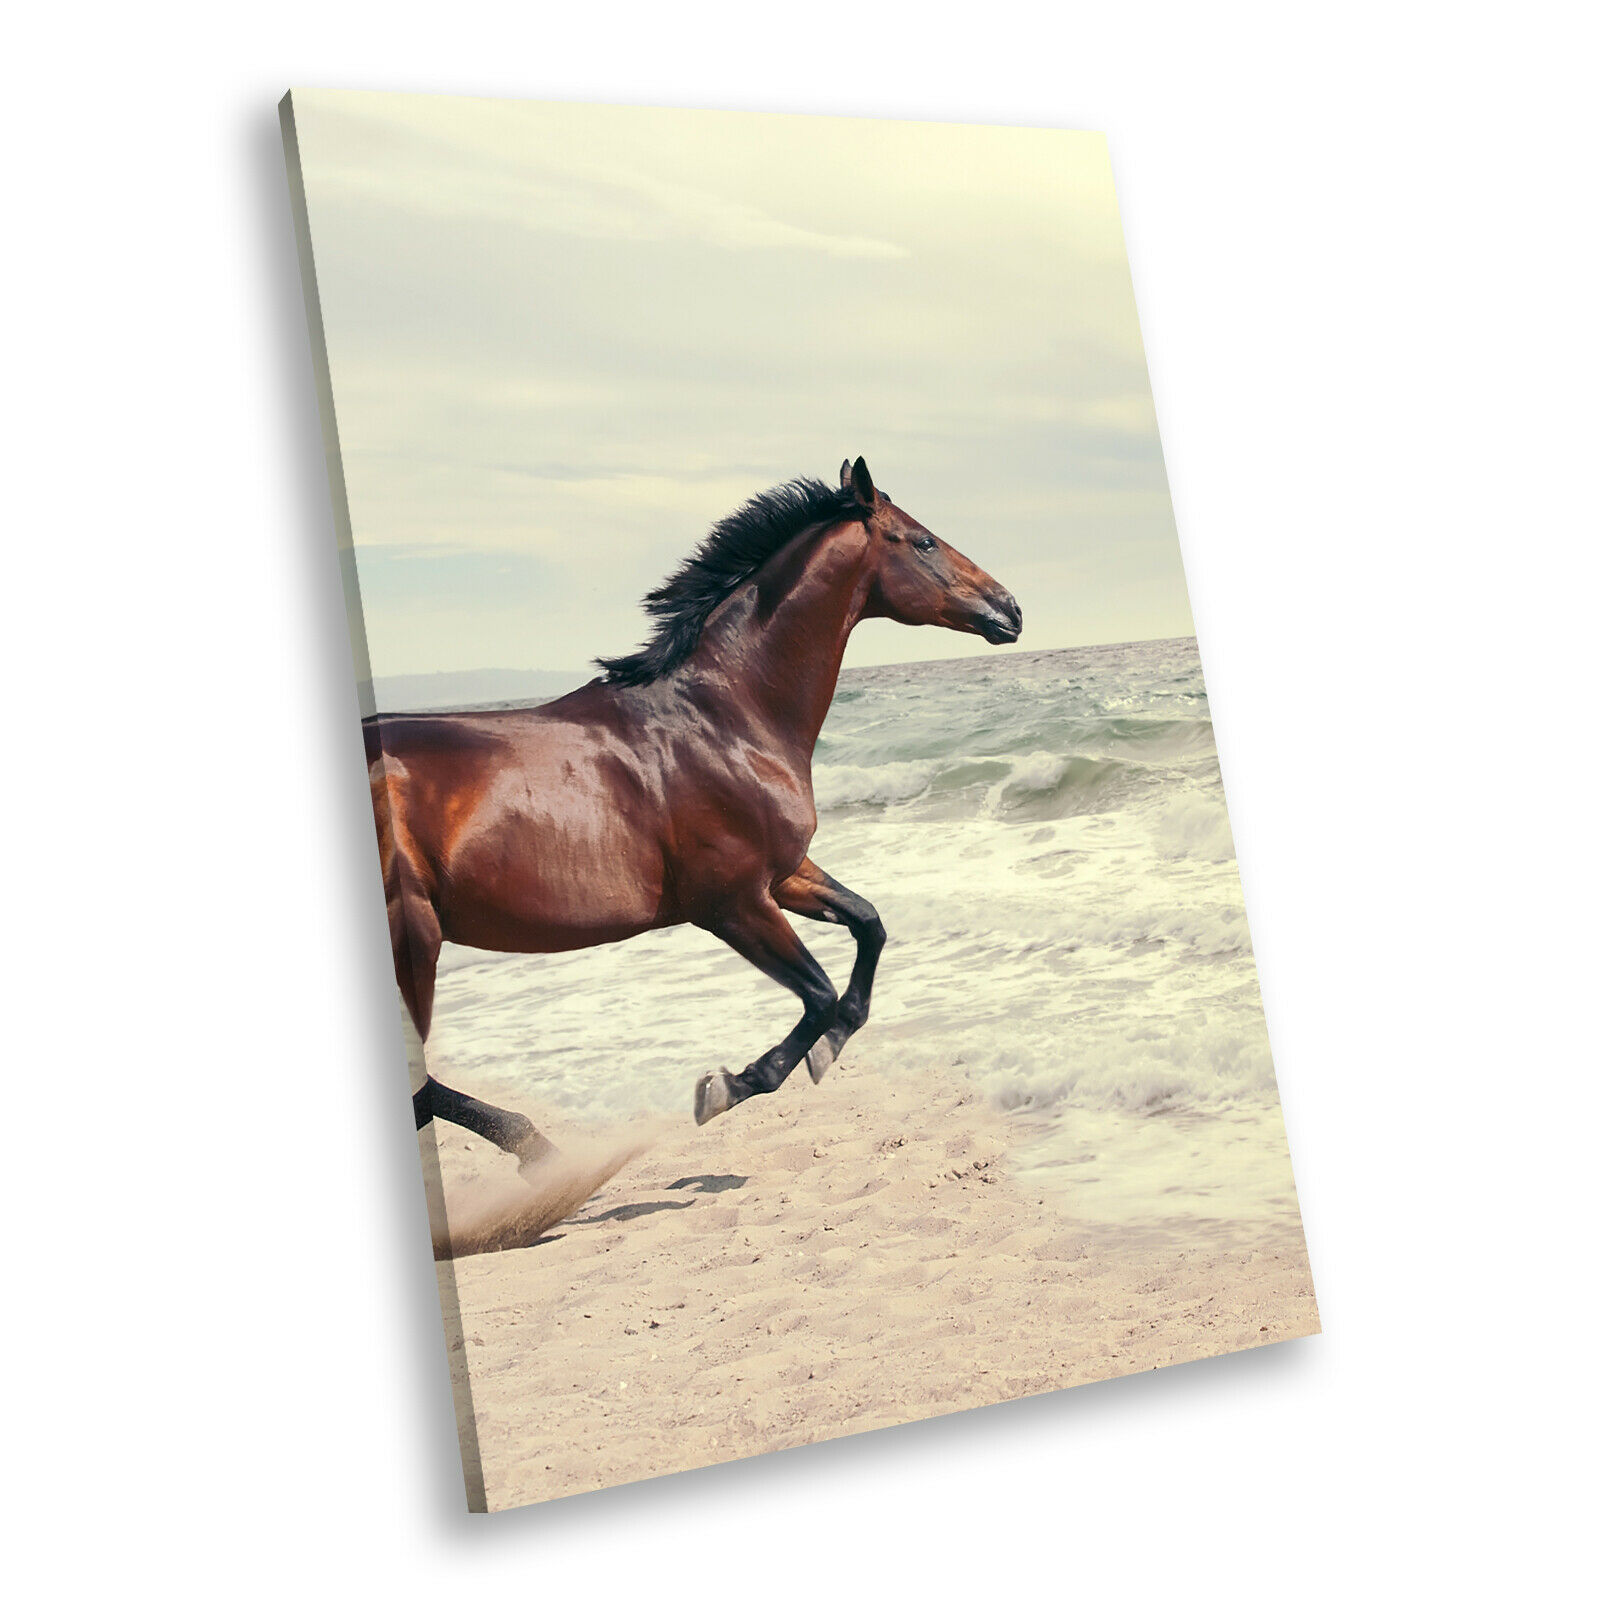 braun Horse Sea Sunset Portrait Animal Canvas Wall Art Large Picture Prints